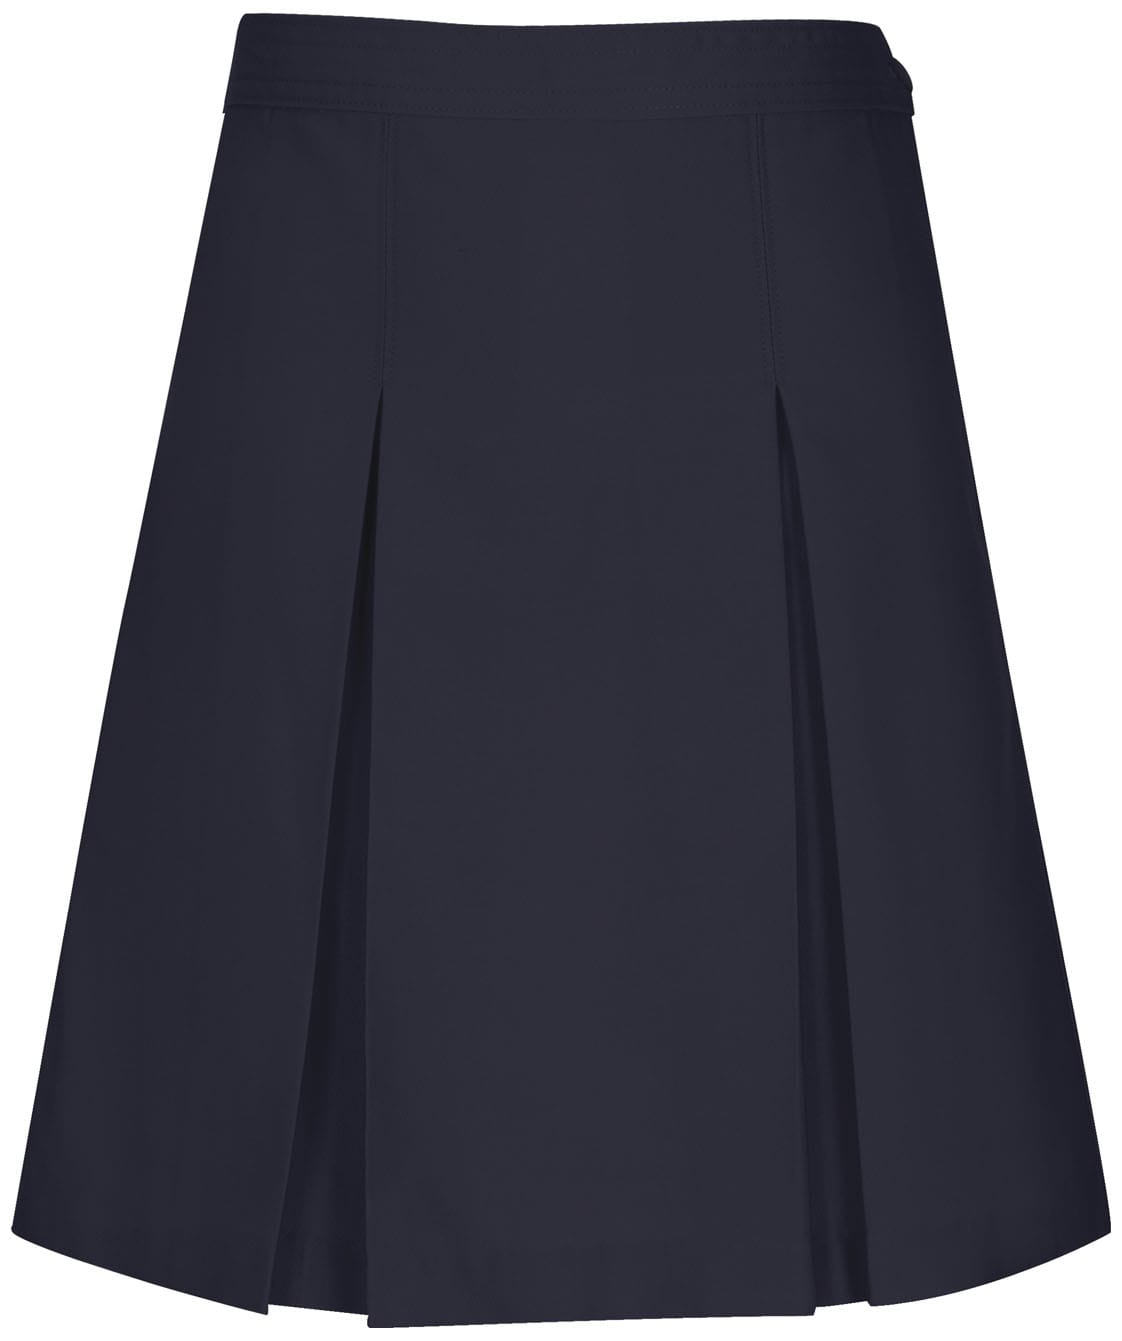 Kick Pleat Skirt - St Nicholas - Navy